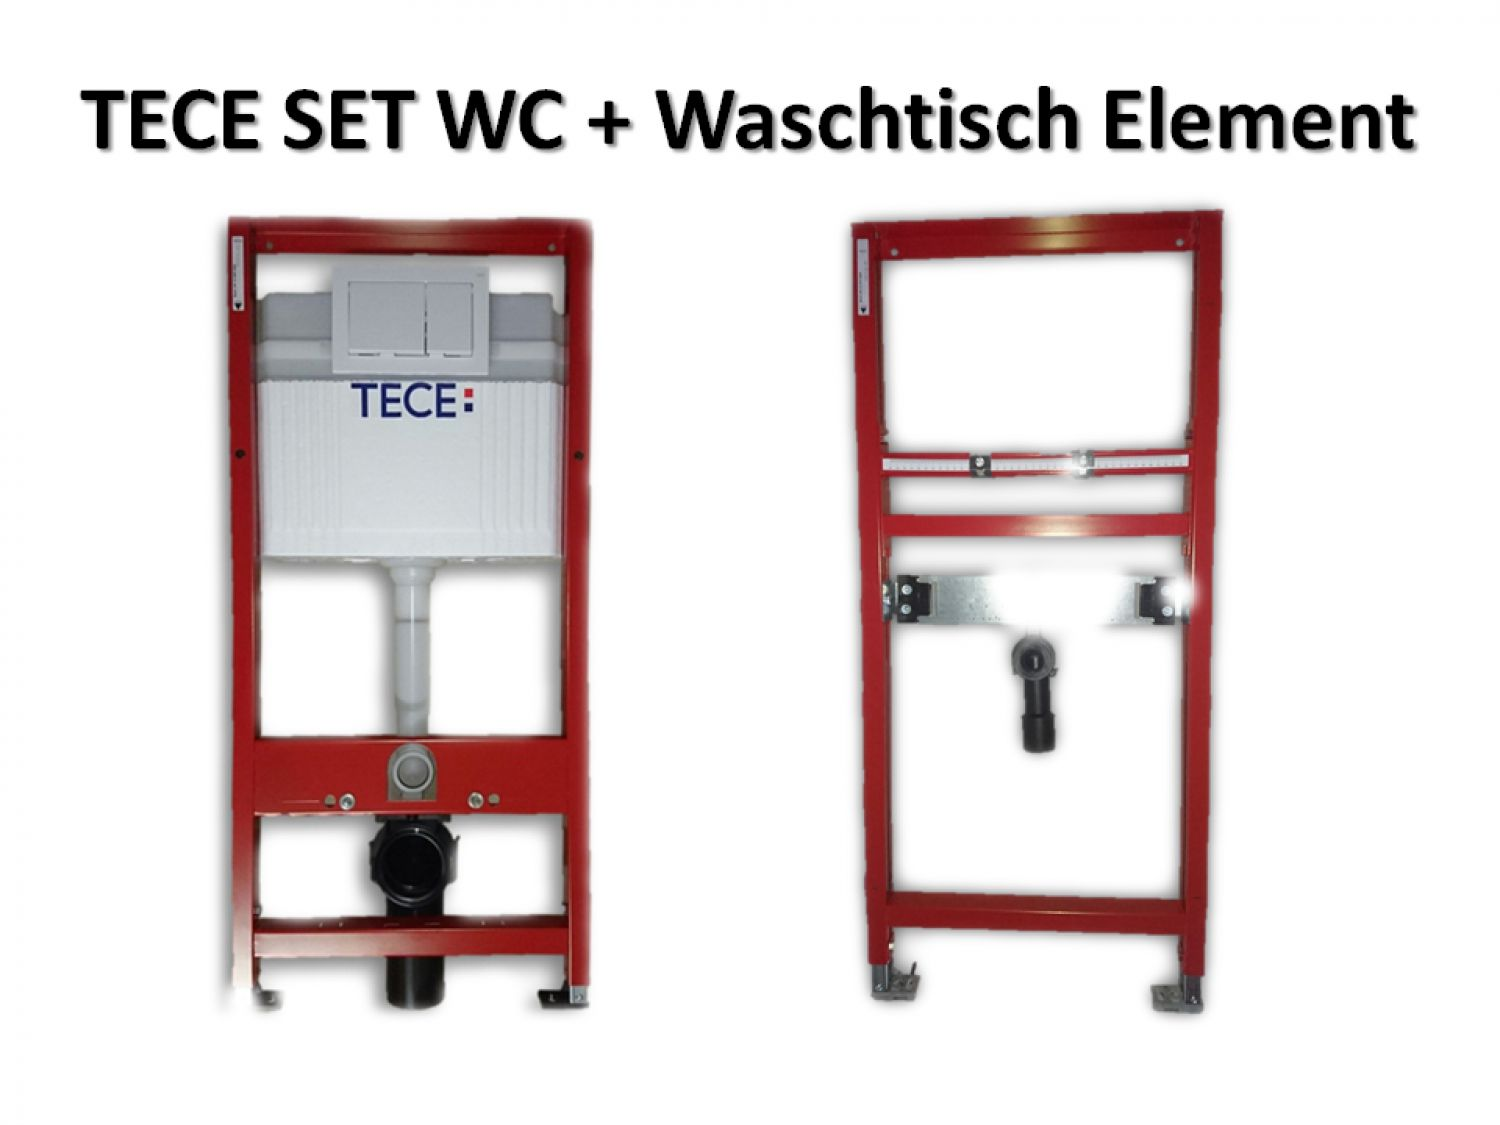 tece wc waschtisch set sp lkasten nr 9400000 9310000 inkl dr ckerplatte weis ebay. Black Bedroom Furniture Sets. Home Design Ideas